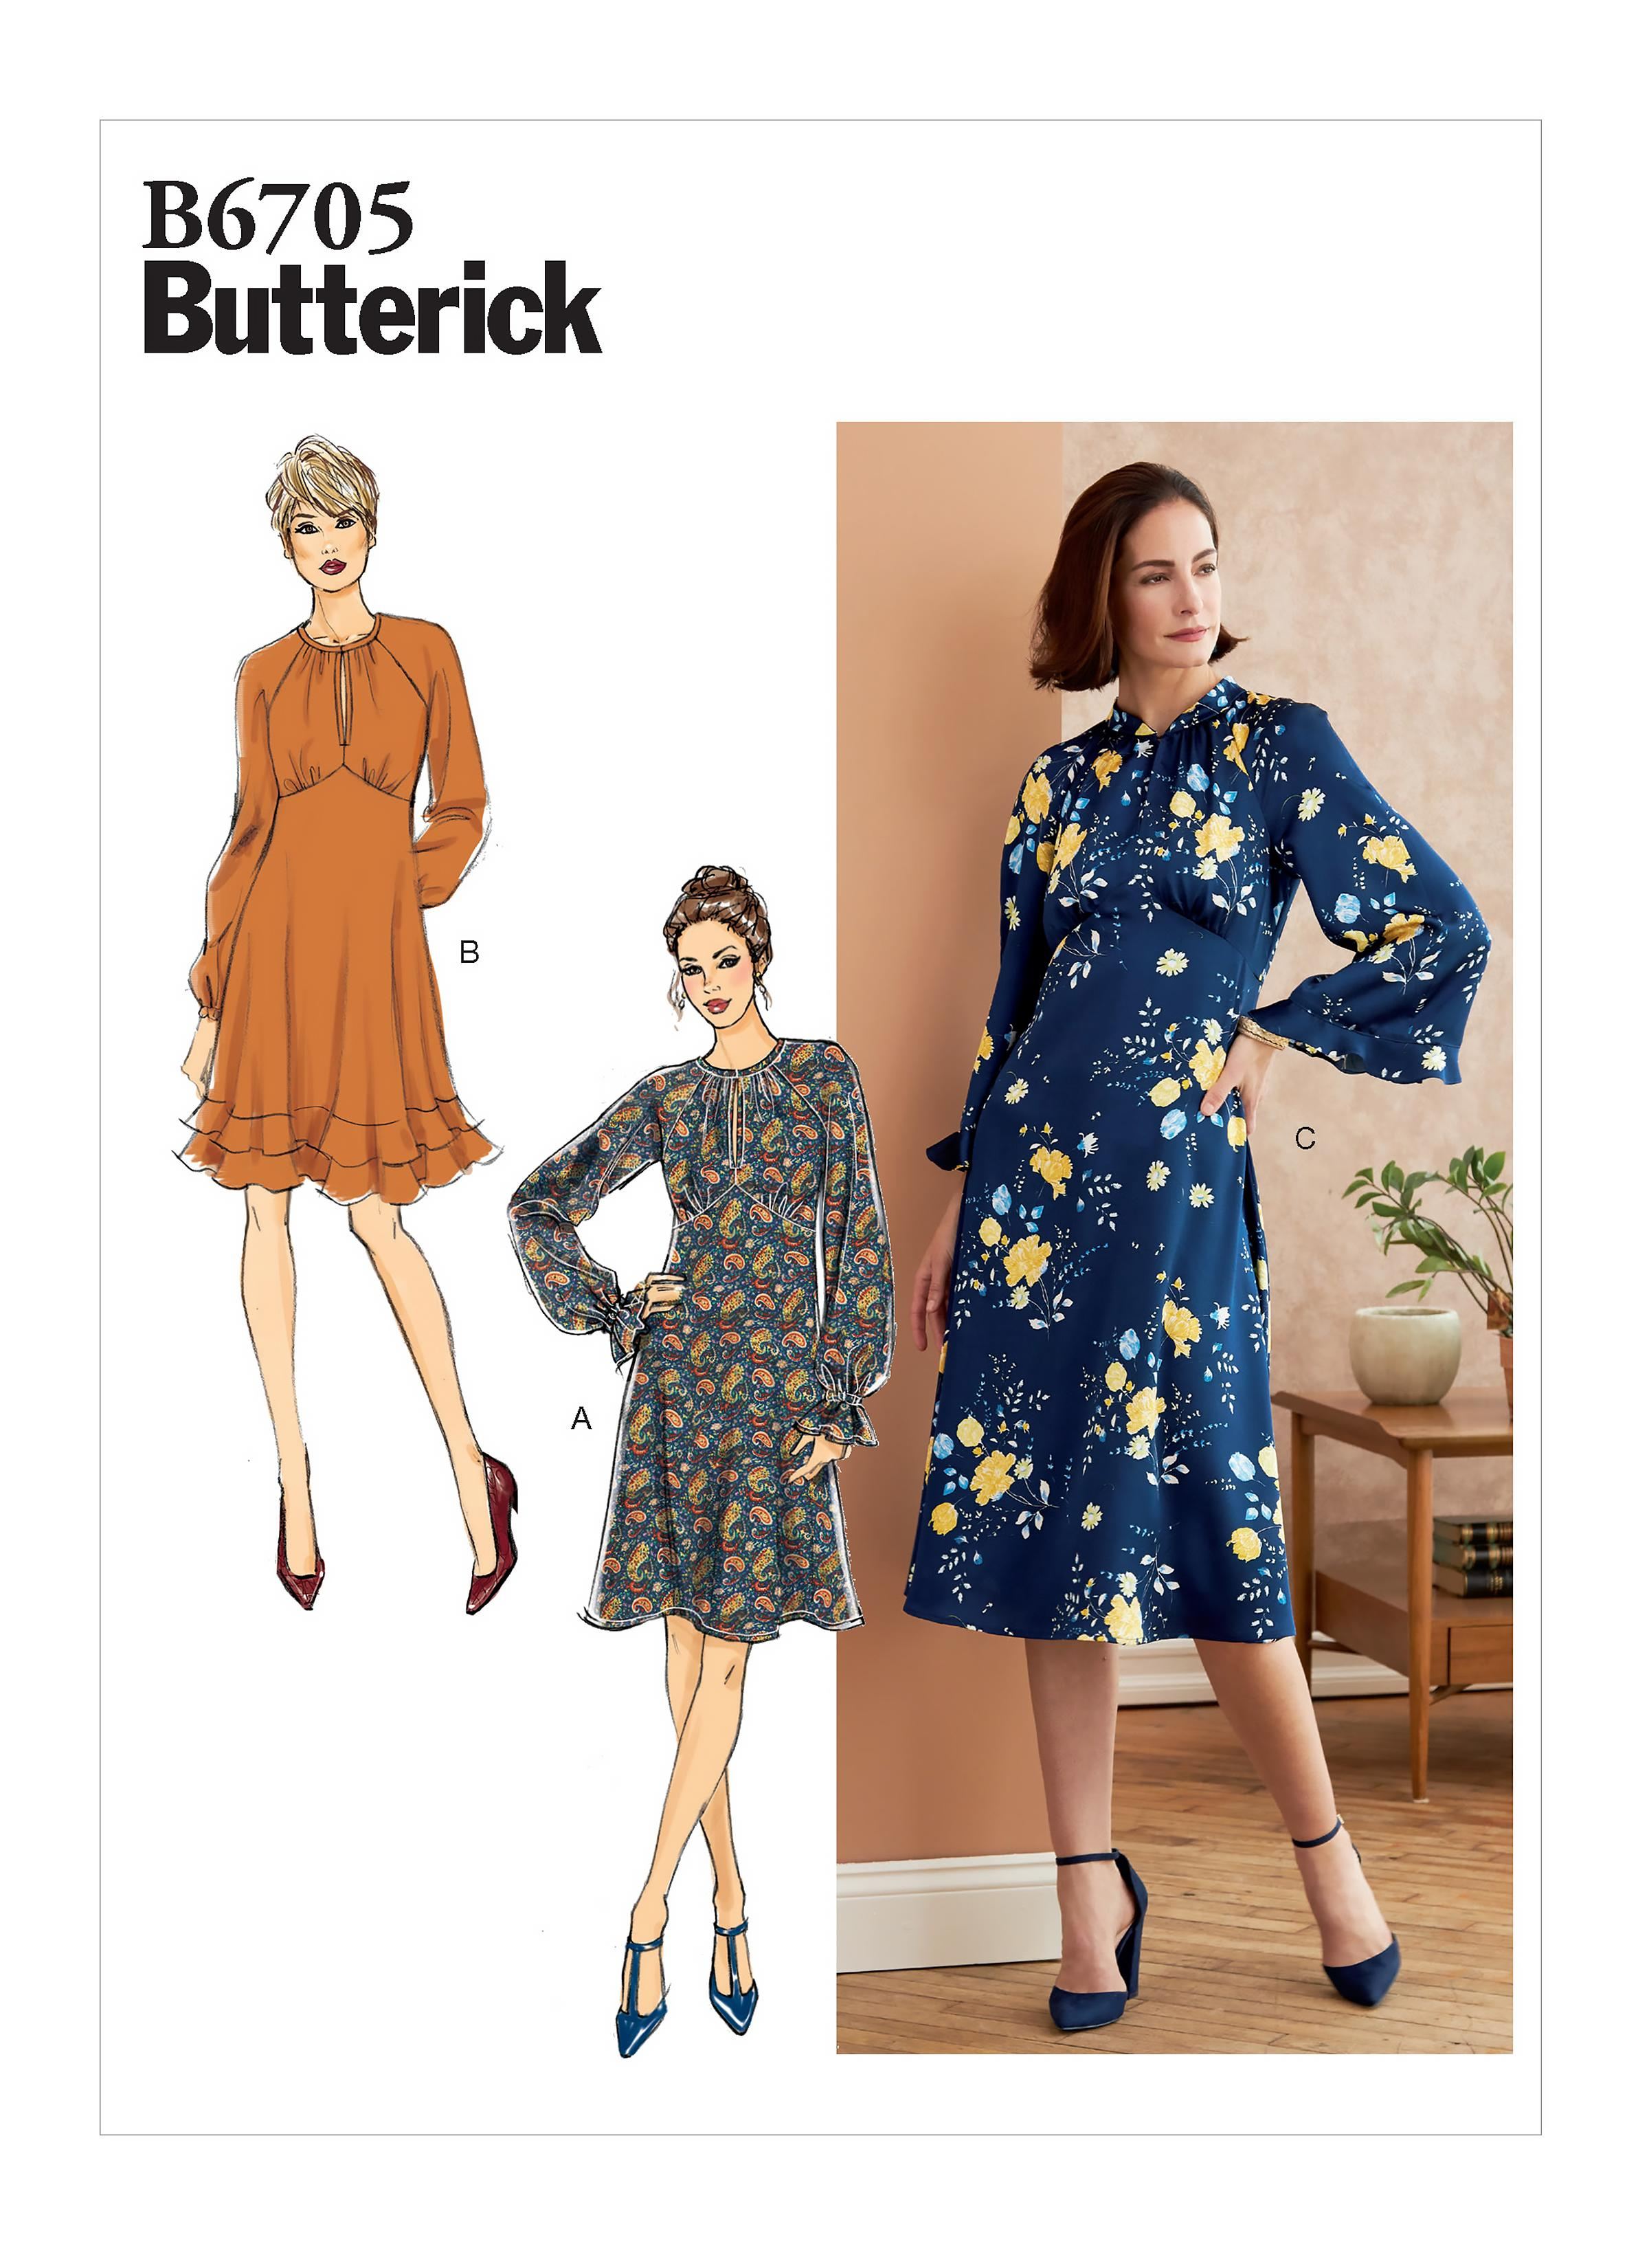 Butterick B6705 Misses' Dress